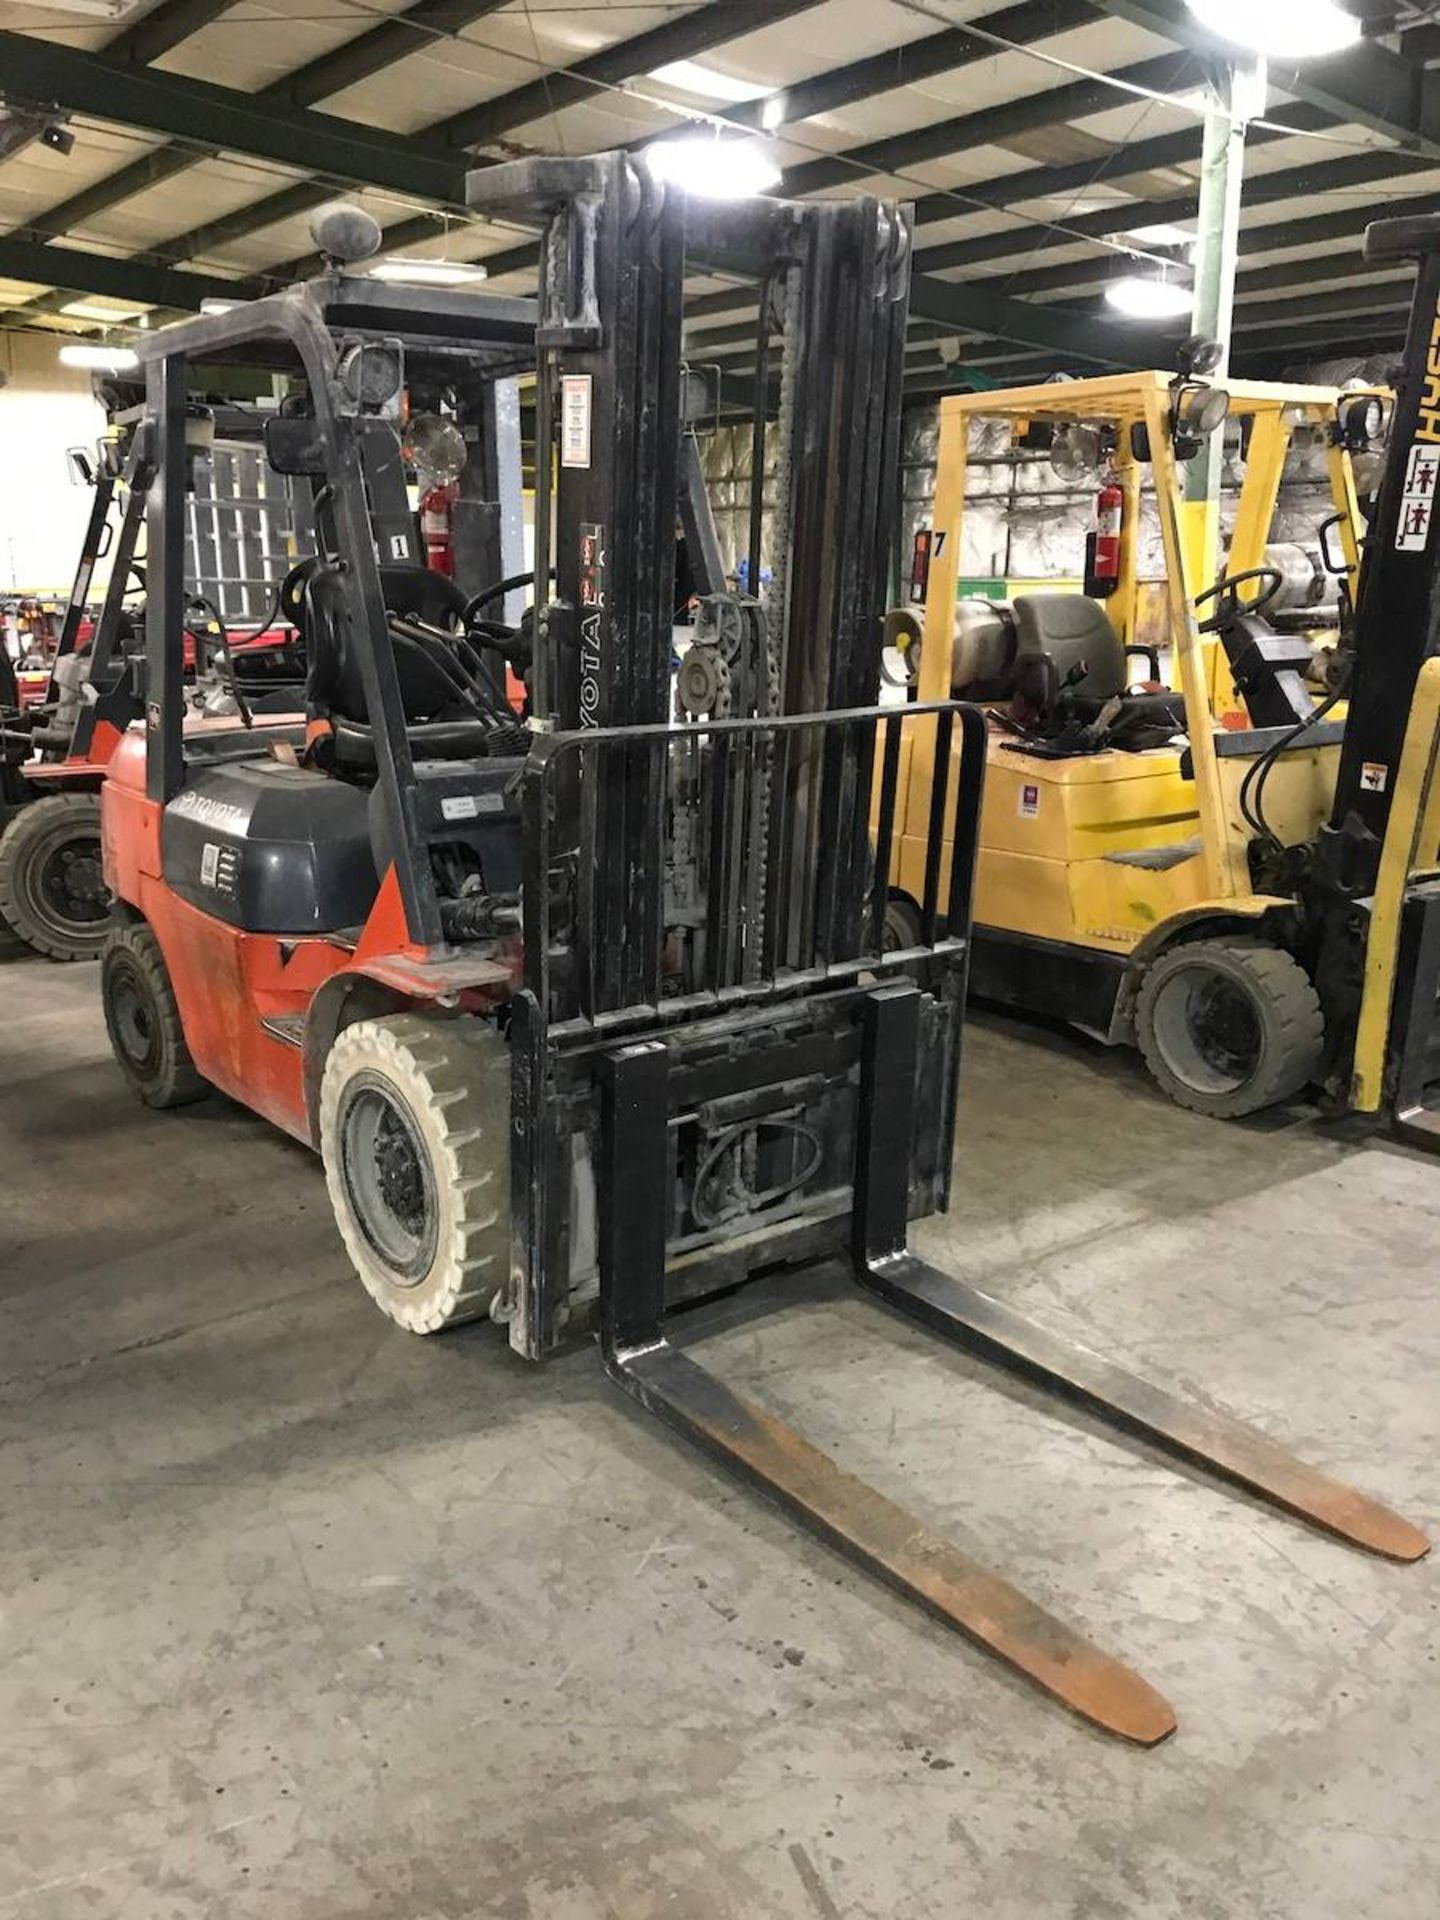 Toyota 7FGU30 Forklift Truck - Image 3 of 6